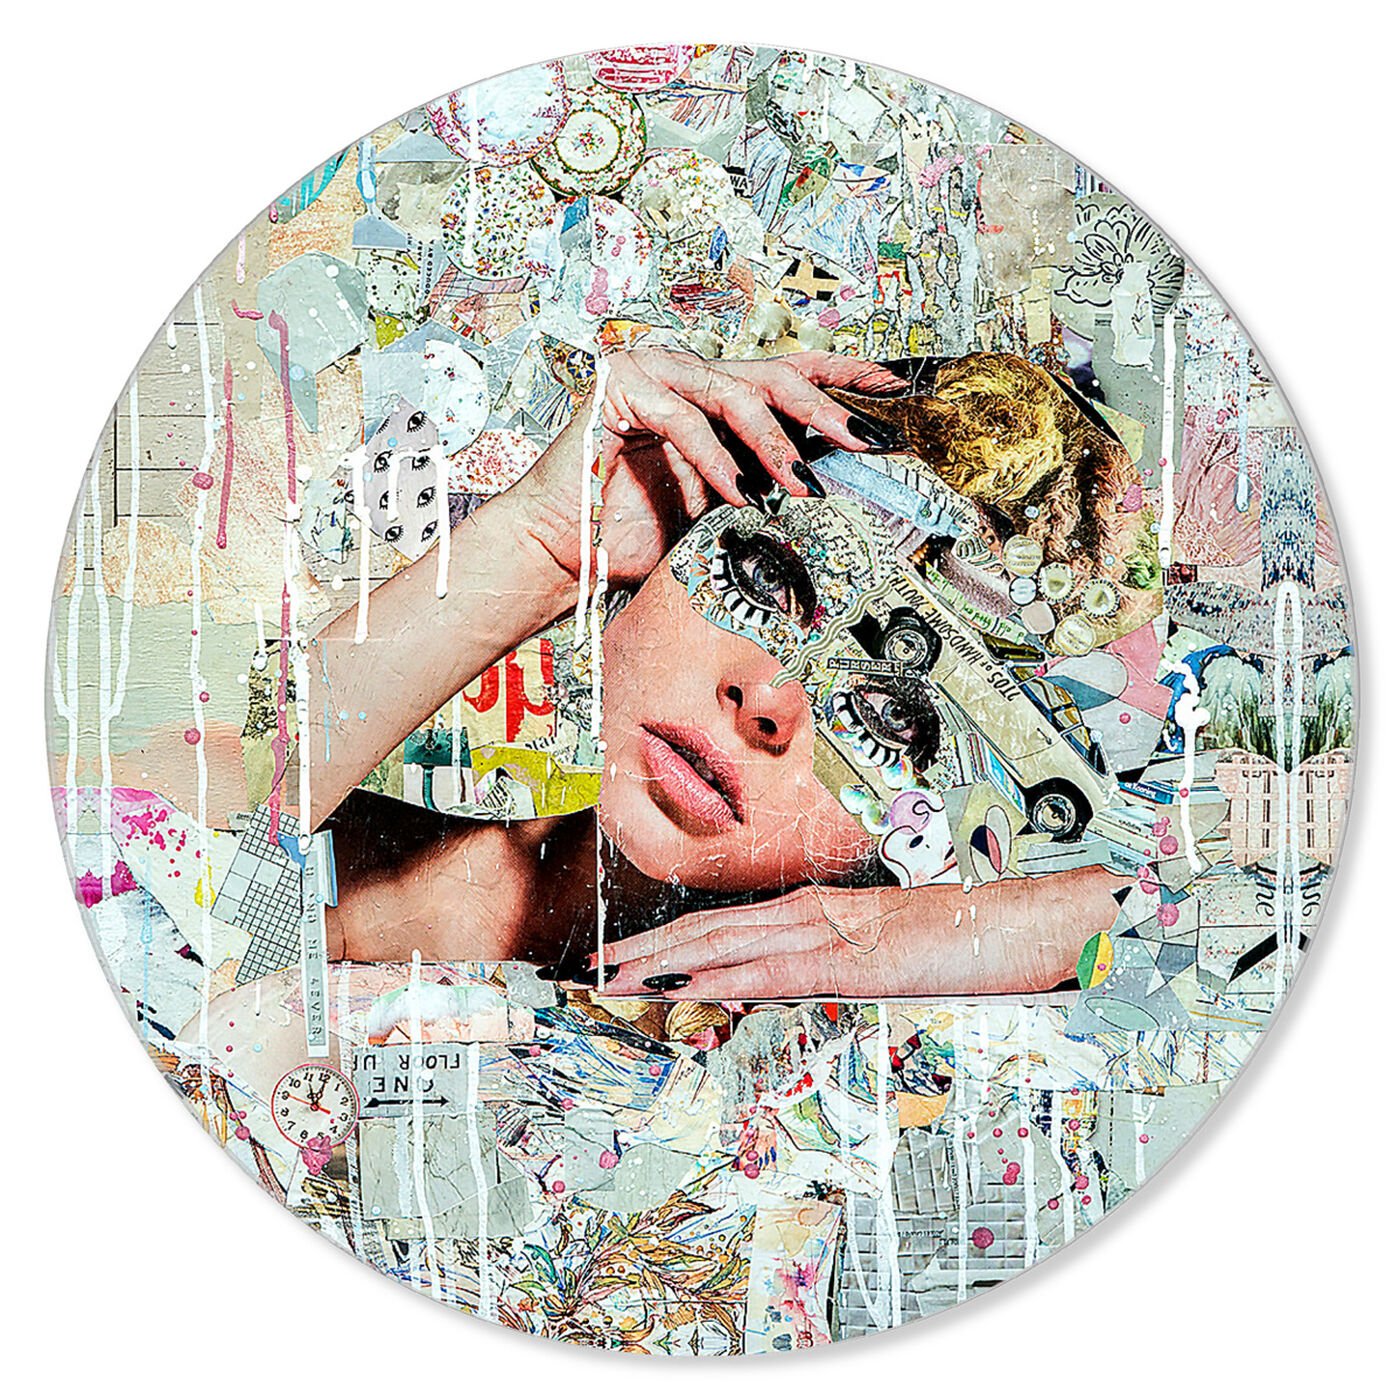 Front view of Katy Hirschfeld - Handsome Youths Circle Art featuring fashion and glam and portraits art.